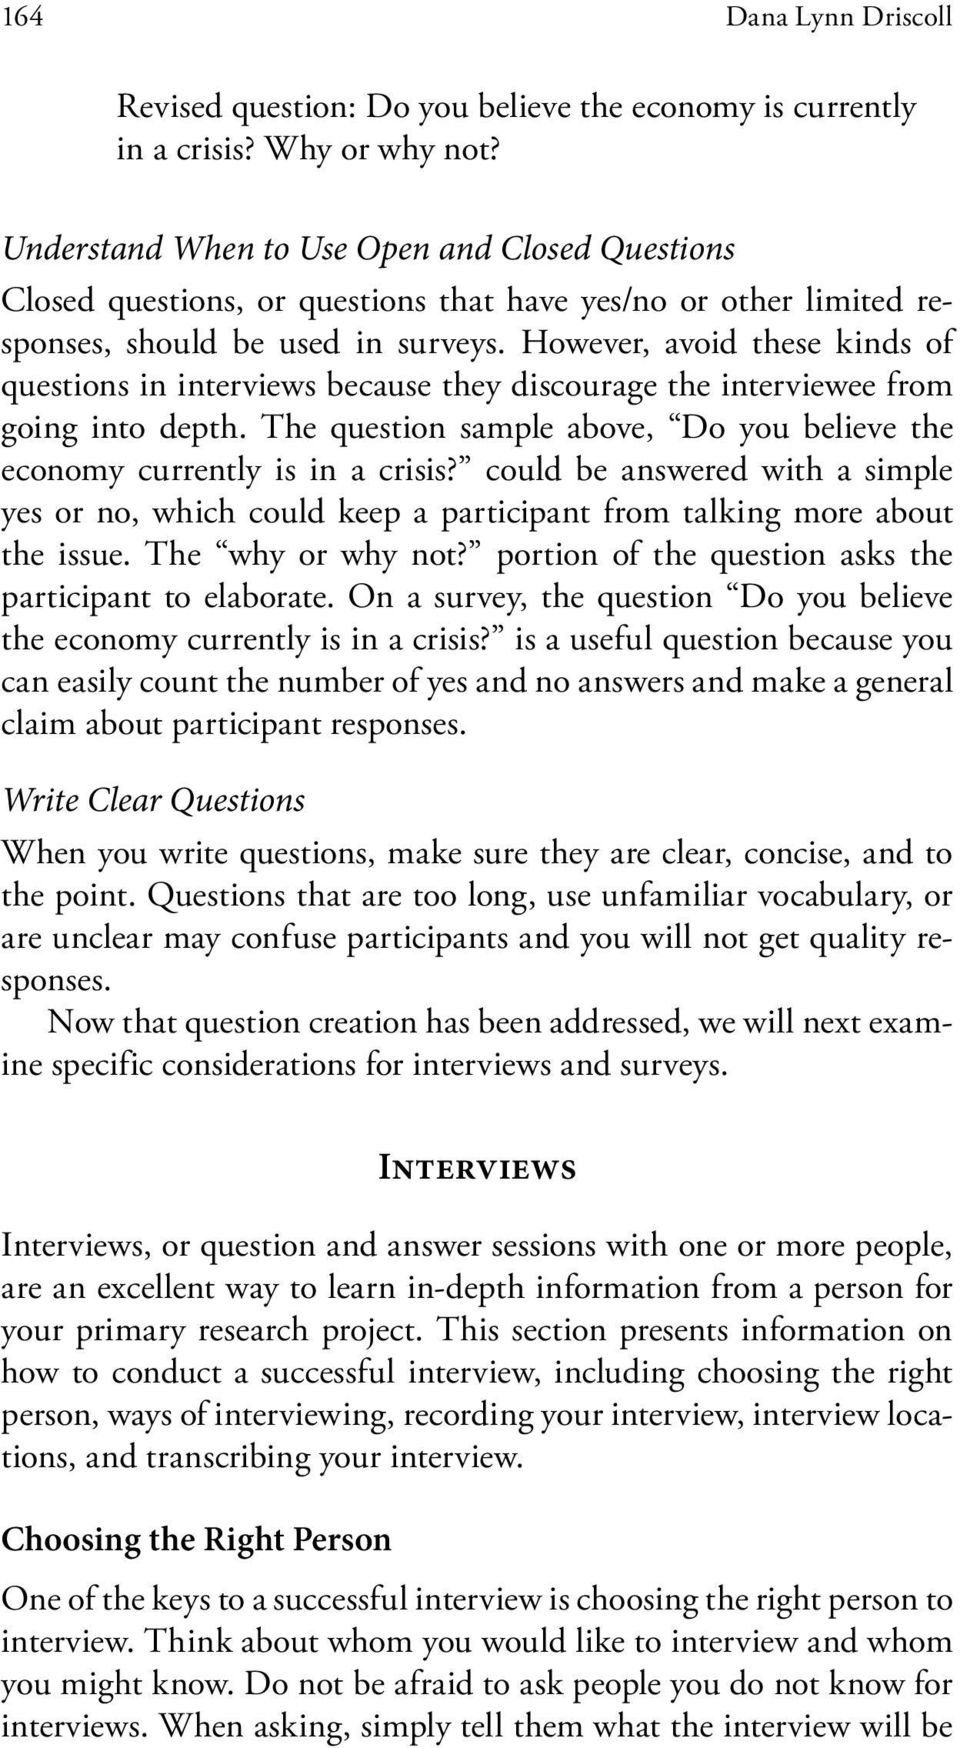 primary research for thesis Home » introduction to primary research: observations, surveys, and interviews introduction to primary information about writing from primary research.